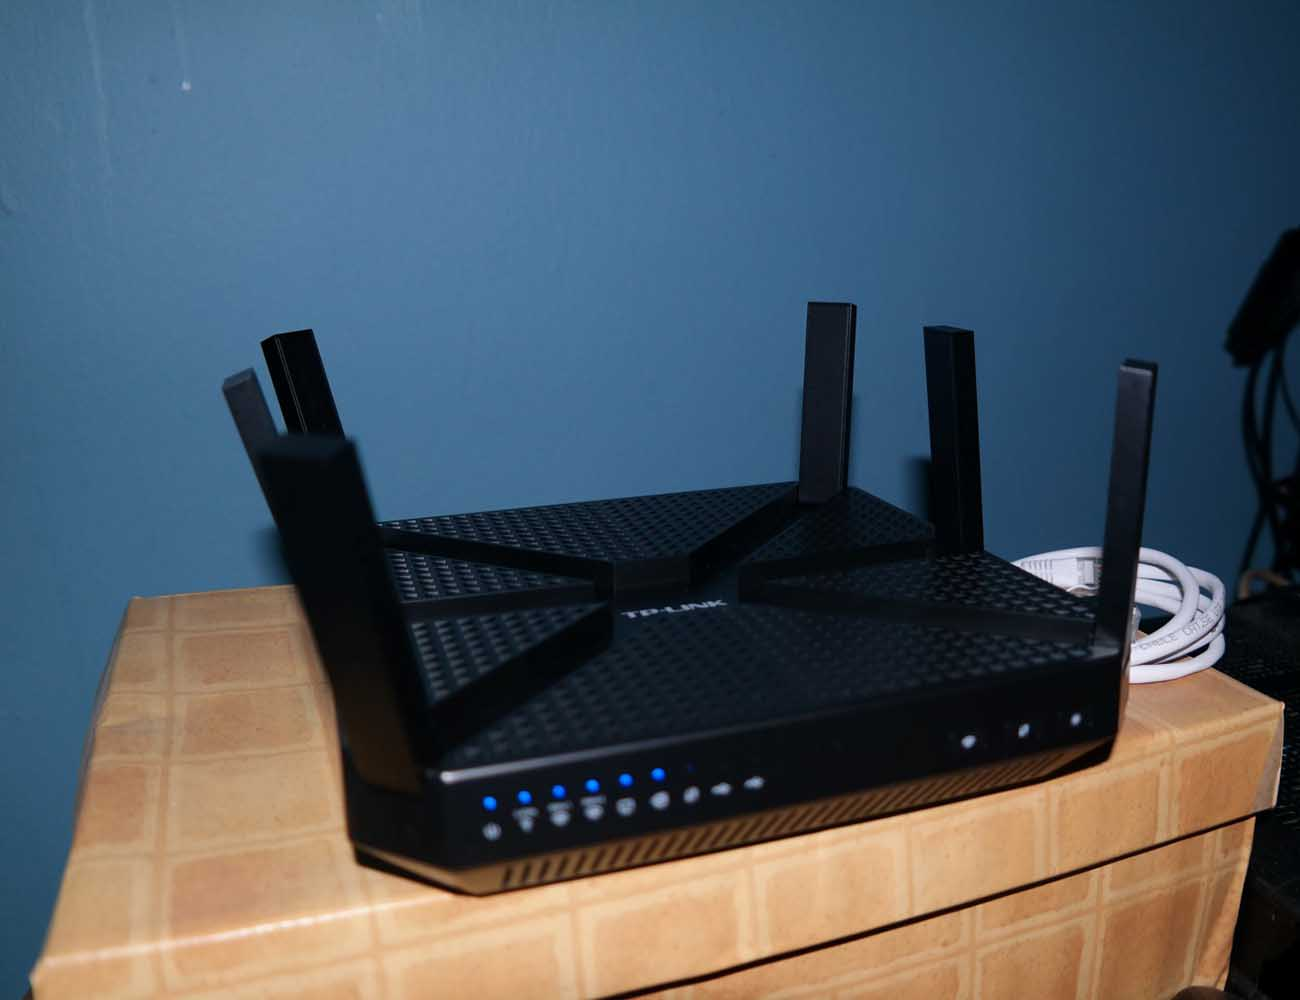 Archer C3200 – Tri-Band Wireless Gigabit Wi-Fi Router by TP-LINK